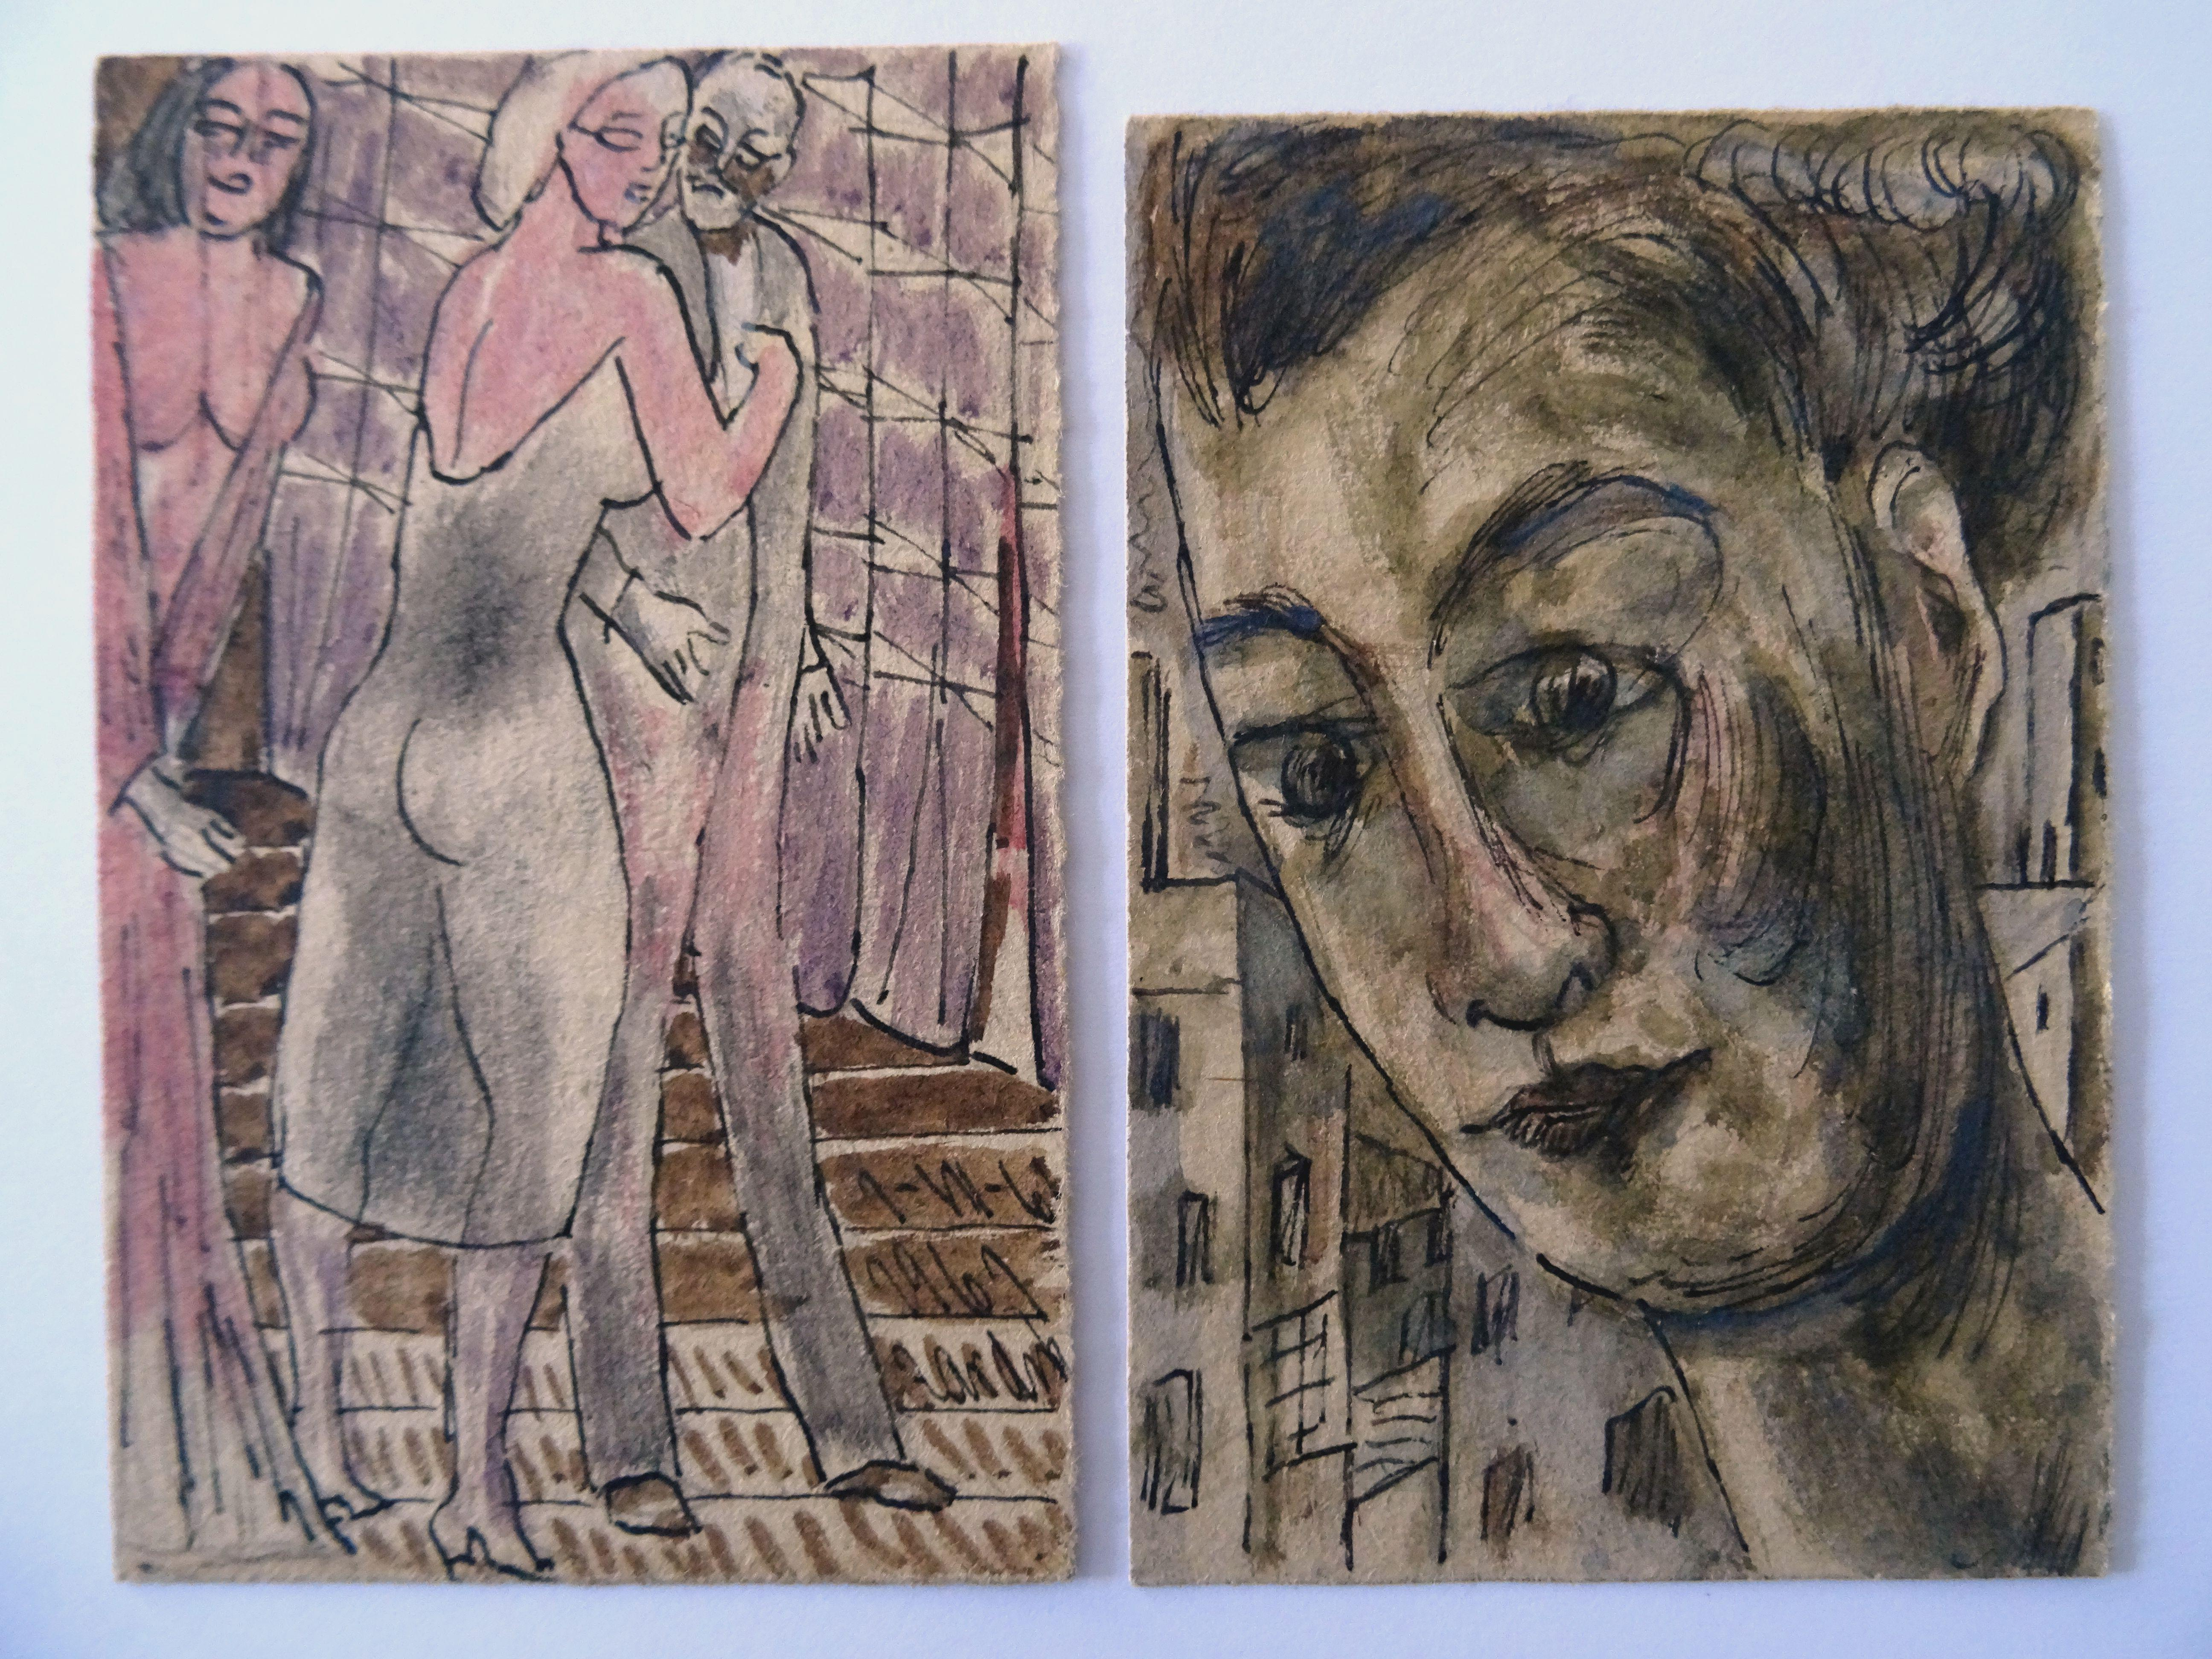 Heights & fast sketch. 1961. Paper, mixed media, 9,5x6 cm; 9x6cm